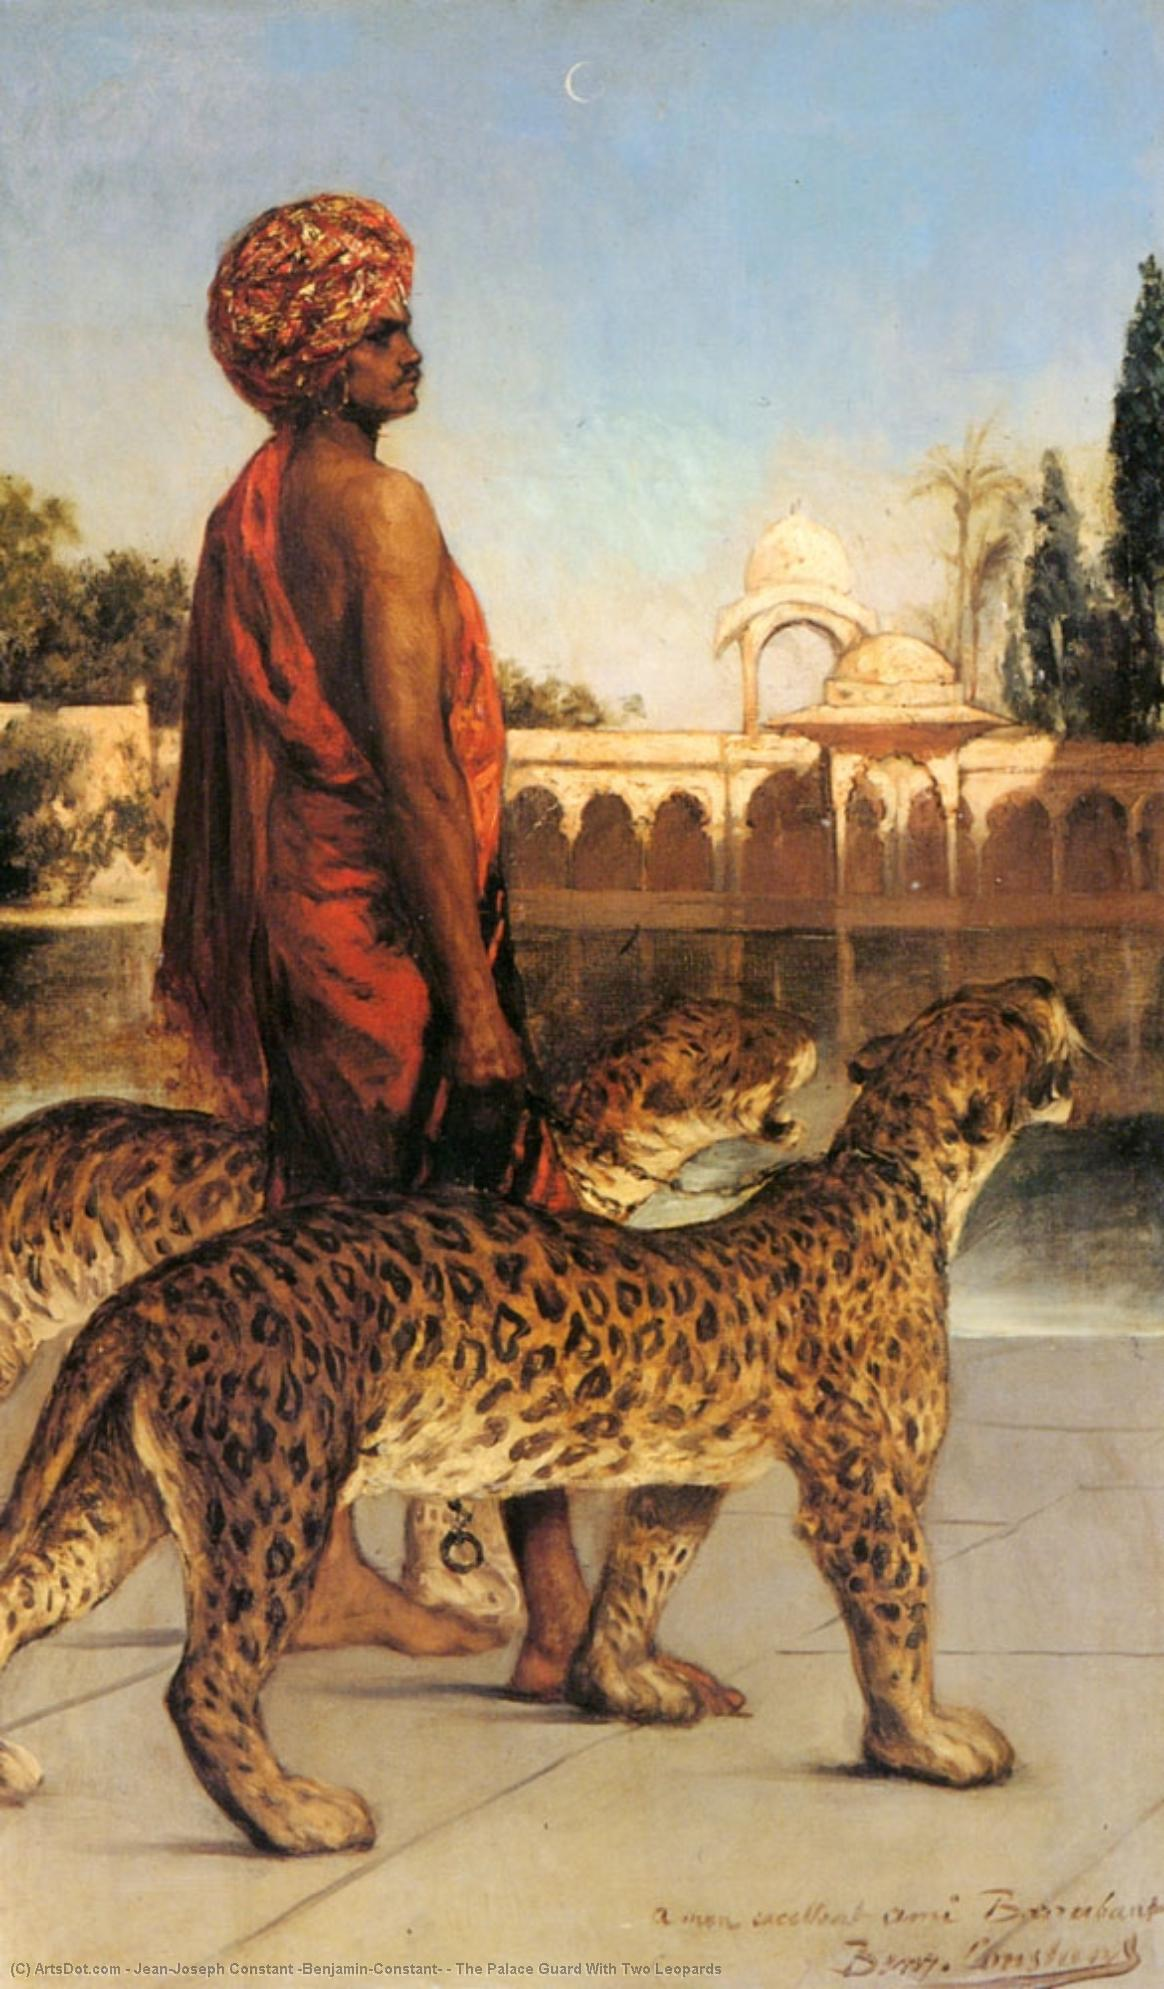 The Palace Guard With Two Leopards by Jean-Joseph Constant (Benjamin-Constant) (1845-1902, France) | Paintings Reproductions Jean-Joseph Constant (Benjamin-Constant) | ArtsDot.com